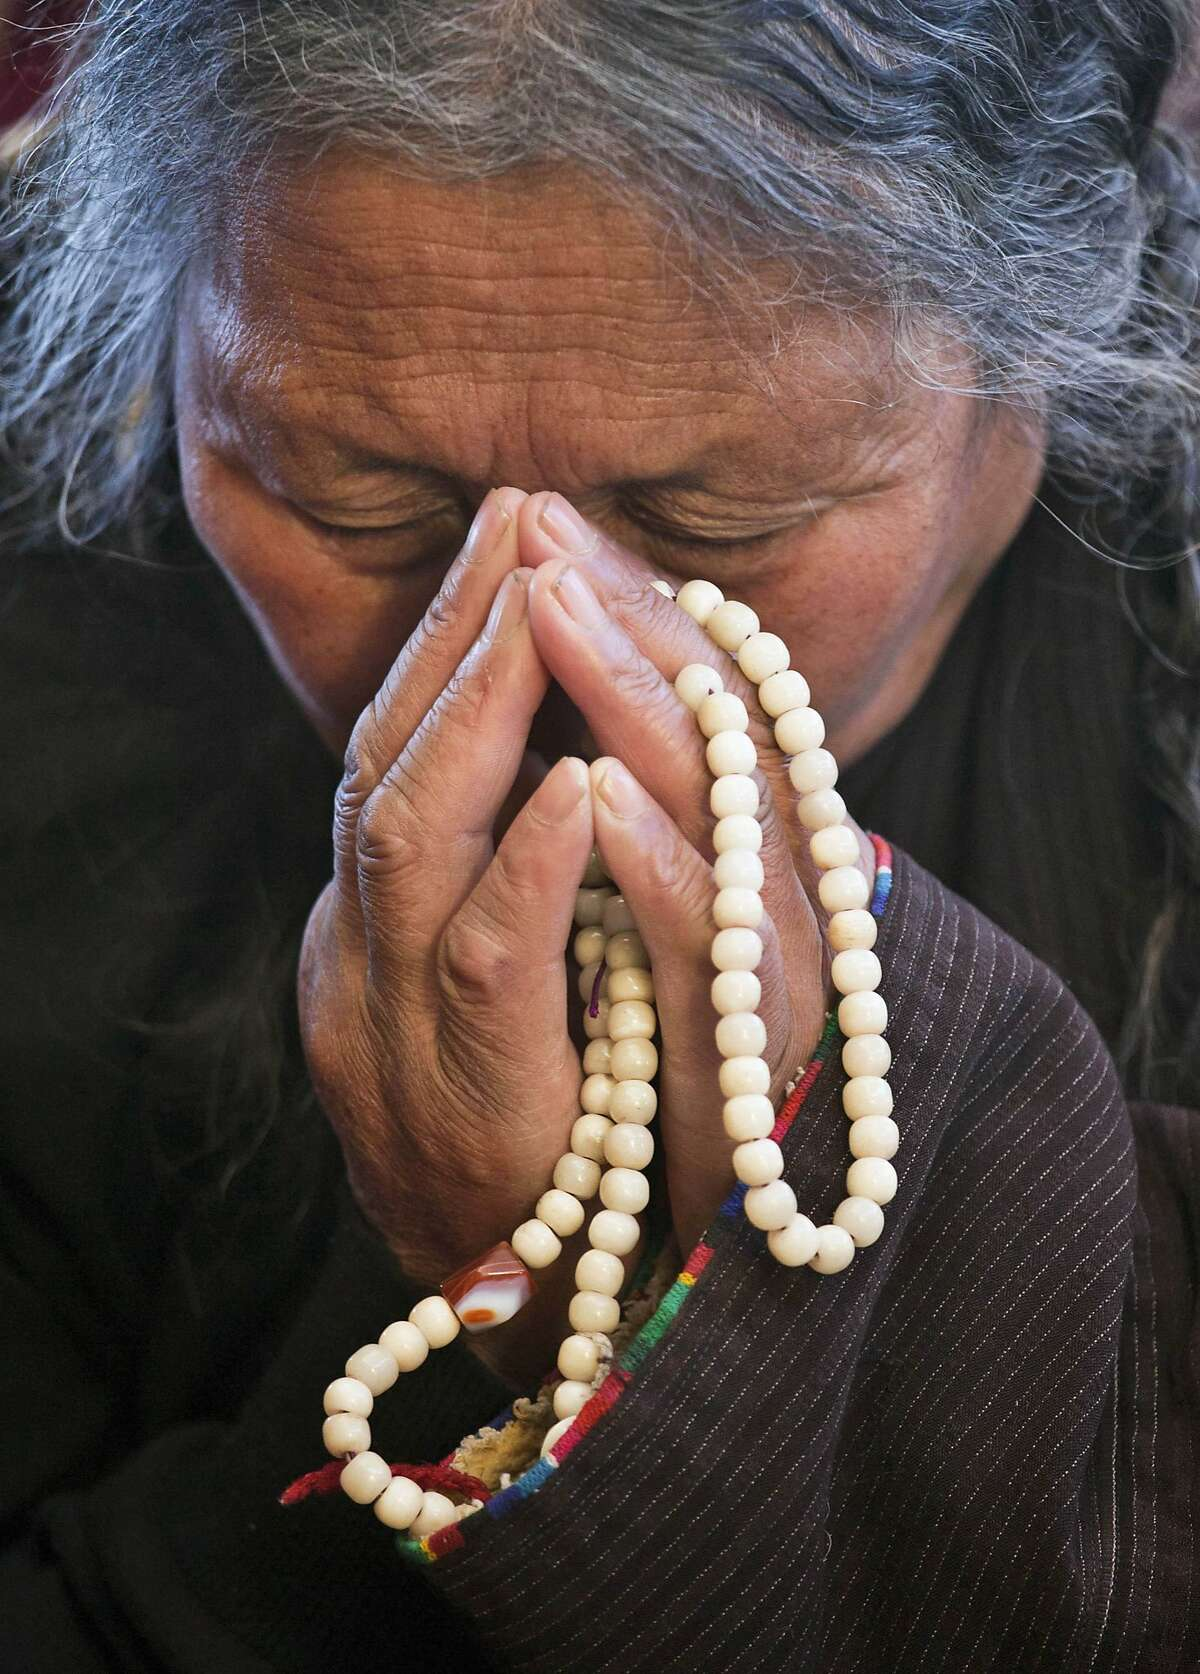 An exile Tibetan prays as she listens to a talk by spiritual leader the Dalai Lama at the Tsuglakhang temple in Dharmsala, India, Friday, Dec. 5, 2014. The four-day talk for a Mongolian Buddhist group ended Friday. (AP Photo/Ashwini Bhatia)